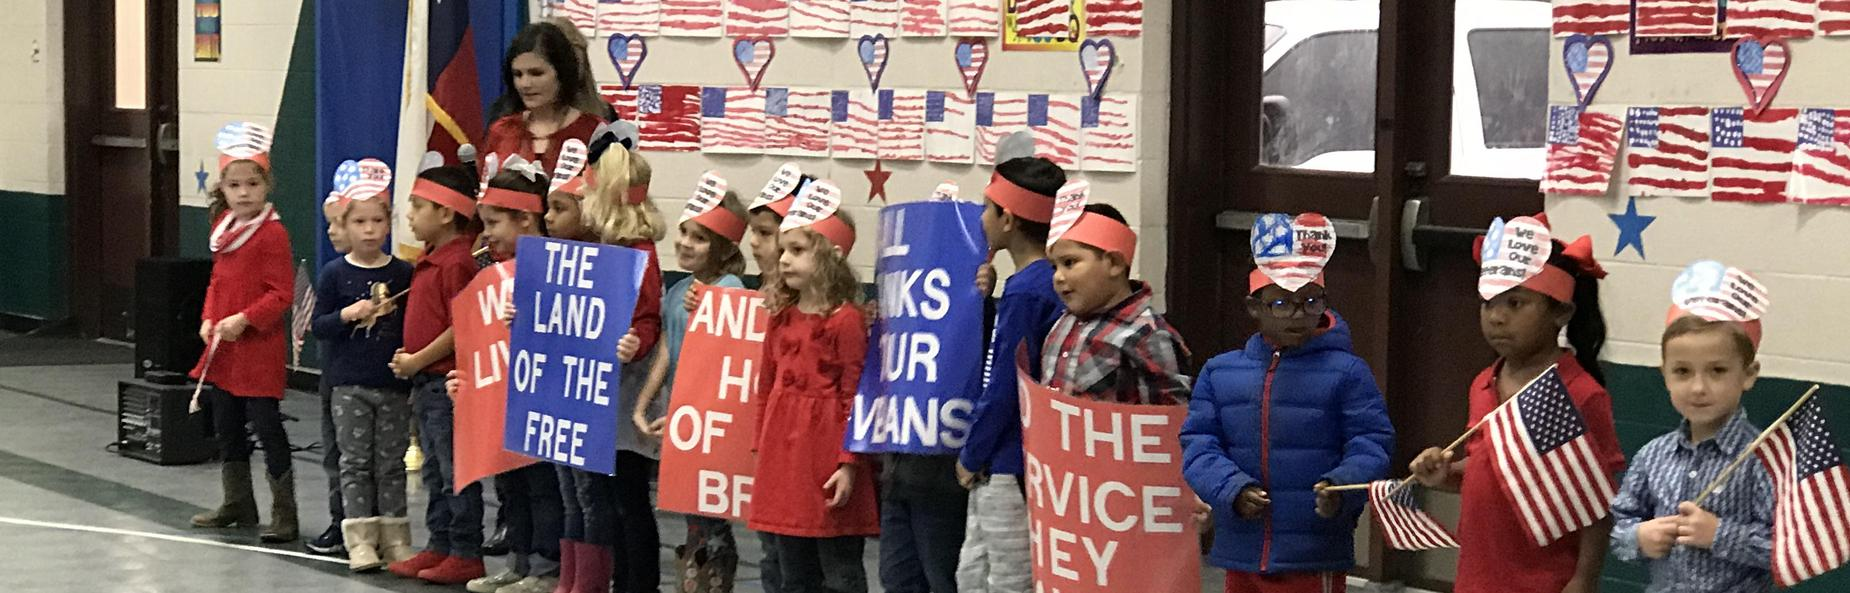 children holding american flags and patriotic signs